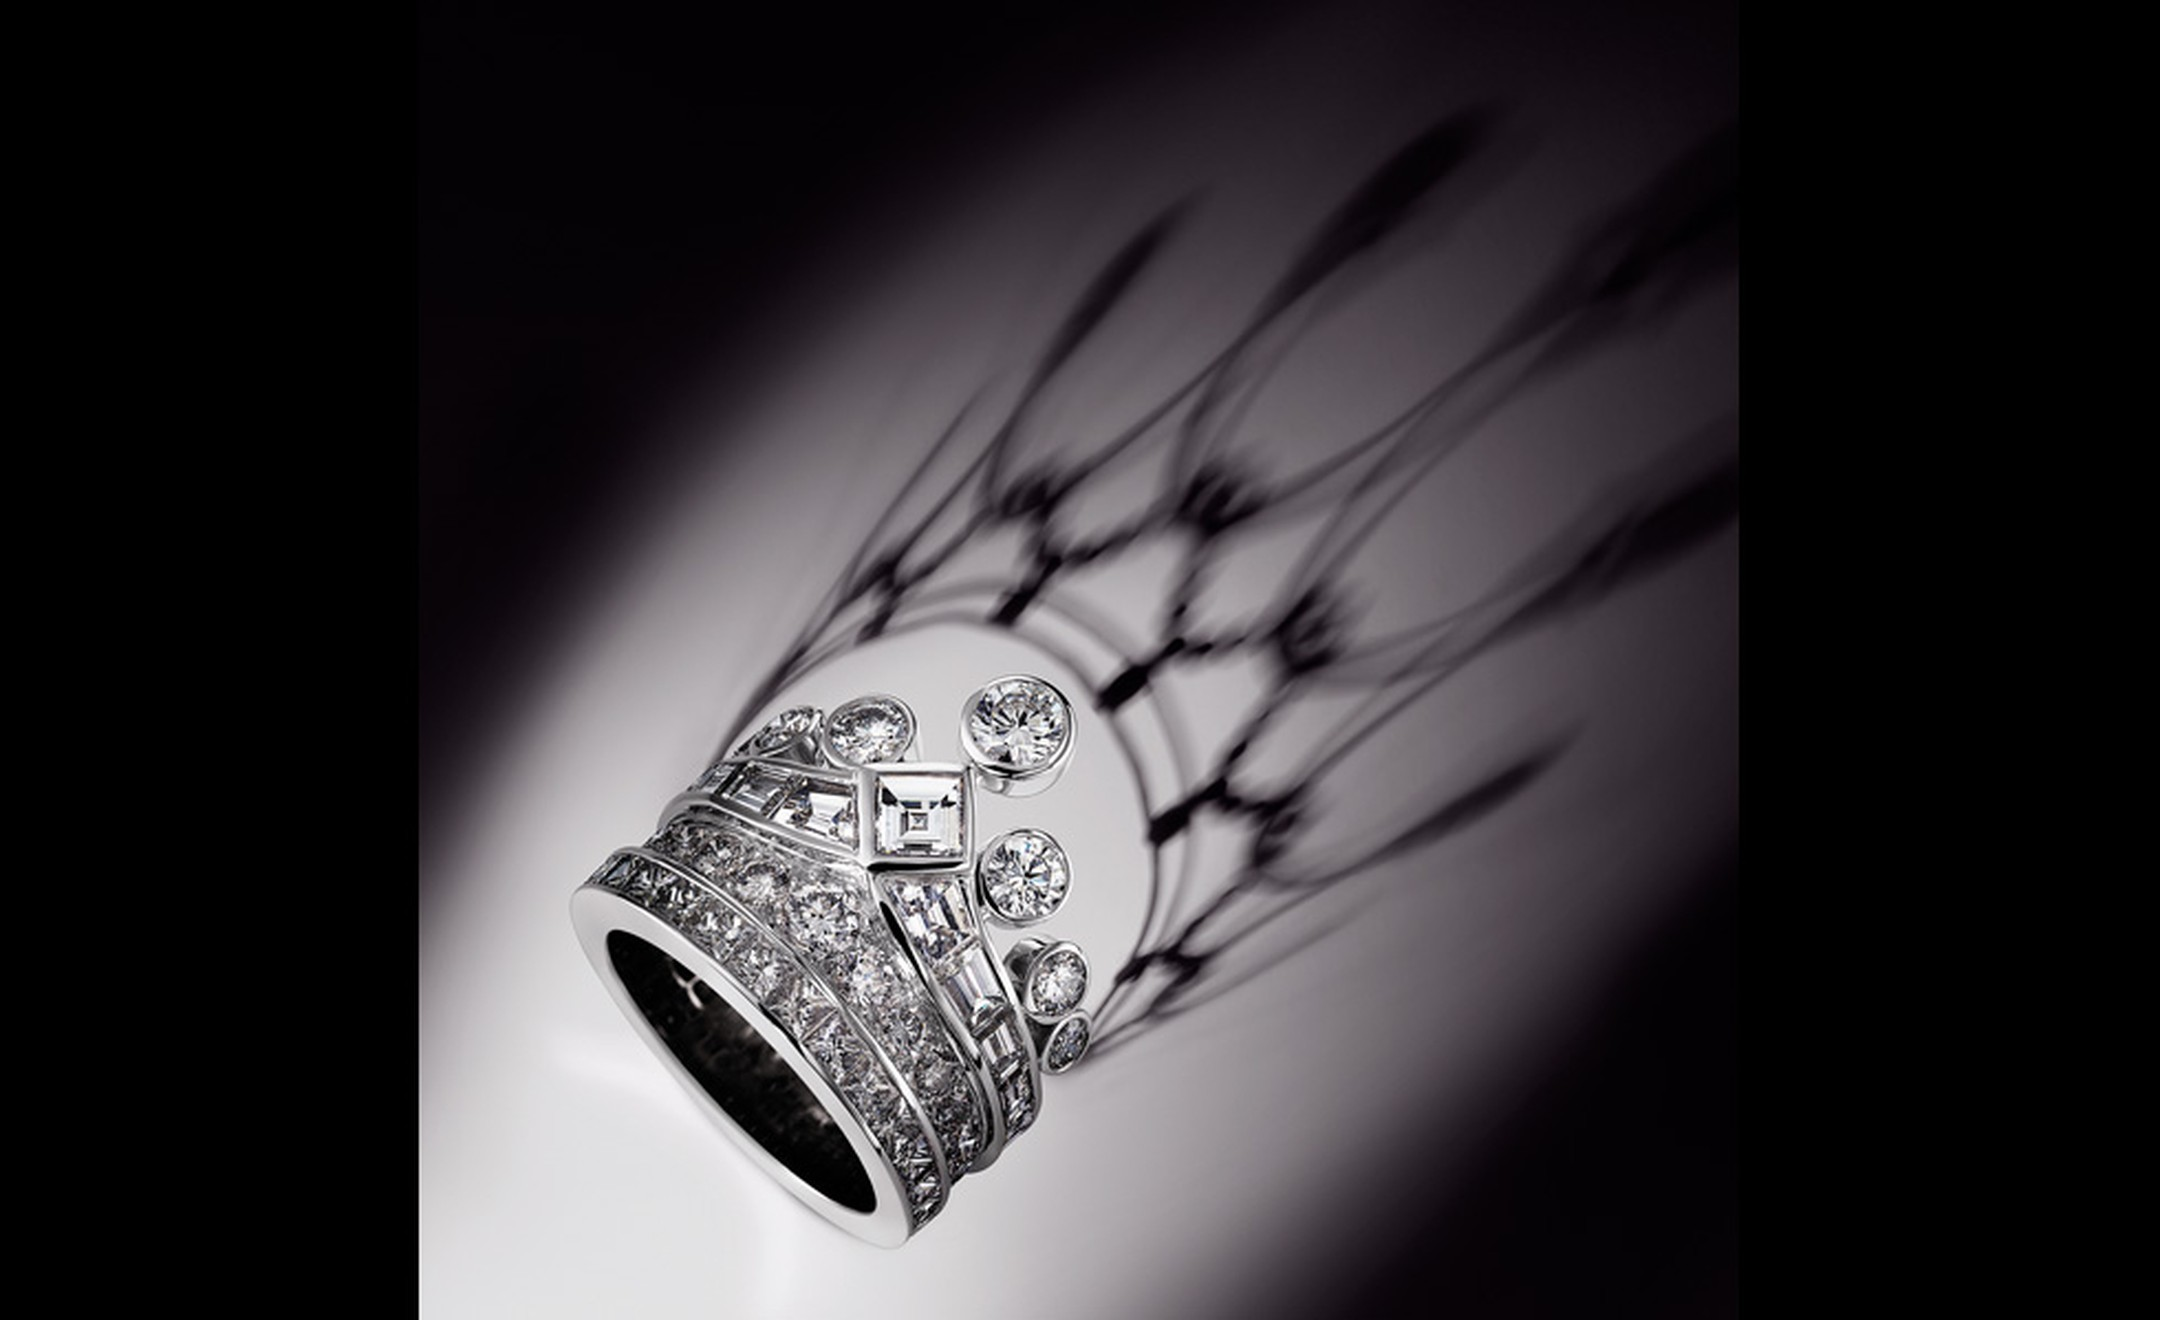 You will never forget that you are the queen of someone's heart with this tiara ring from Chaumet.